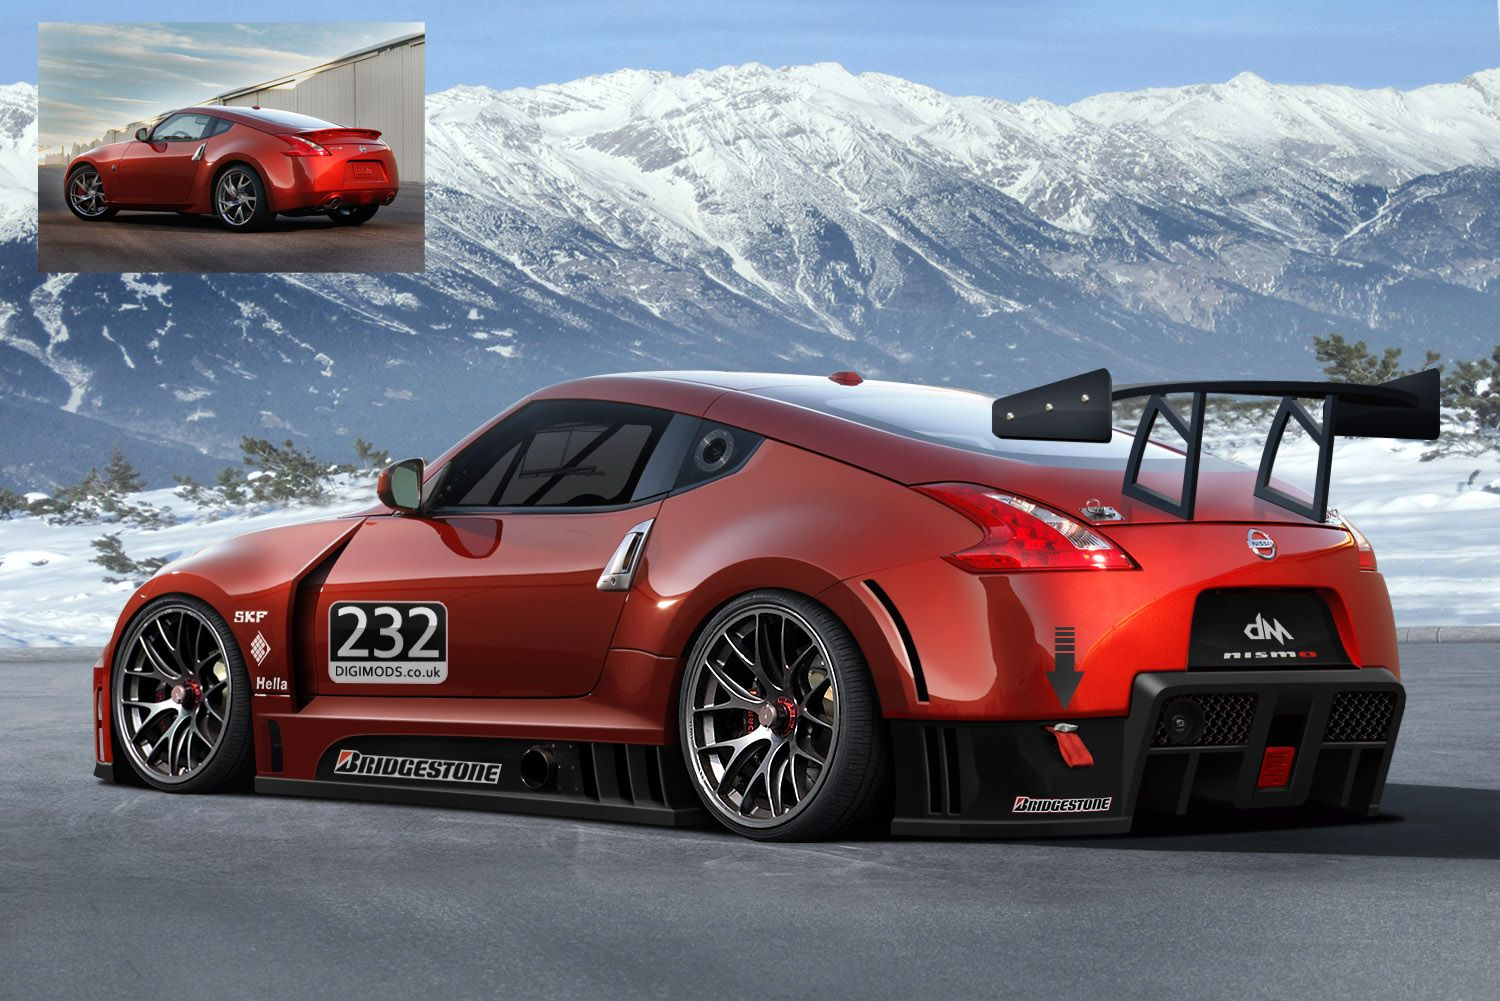 370z racing above average rides pinterest nissan cars and 370z racing vanachro Gallery